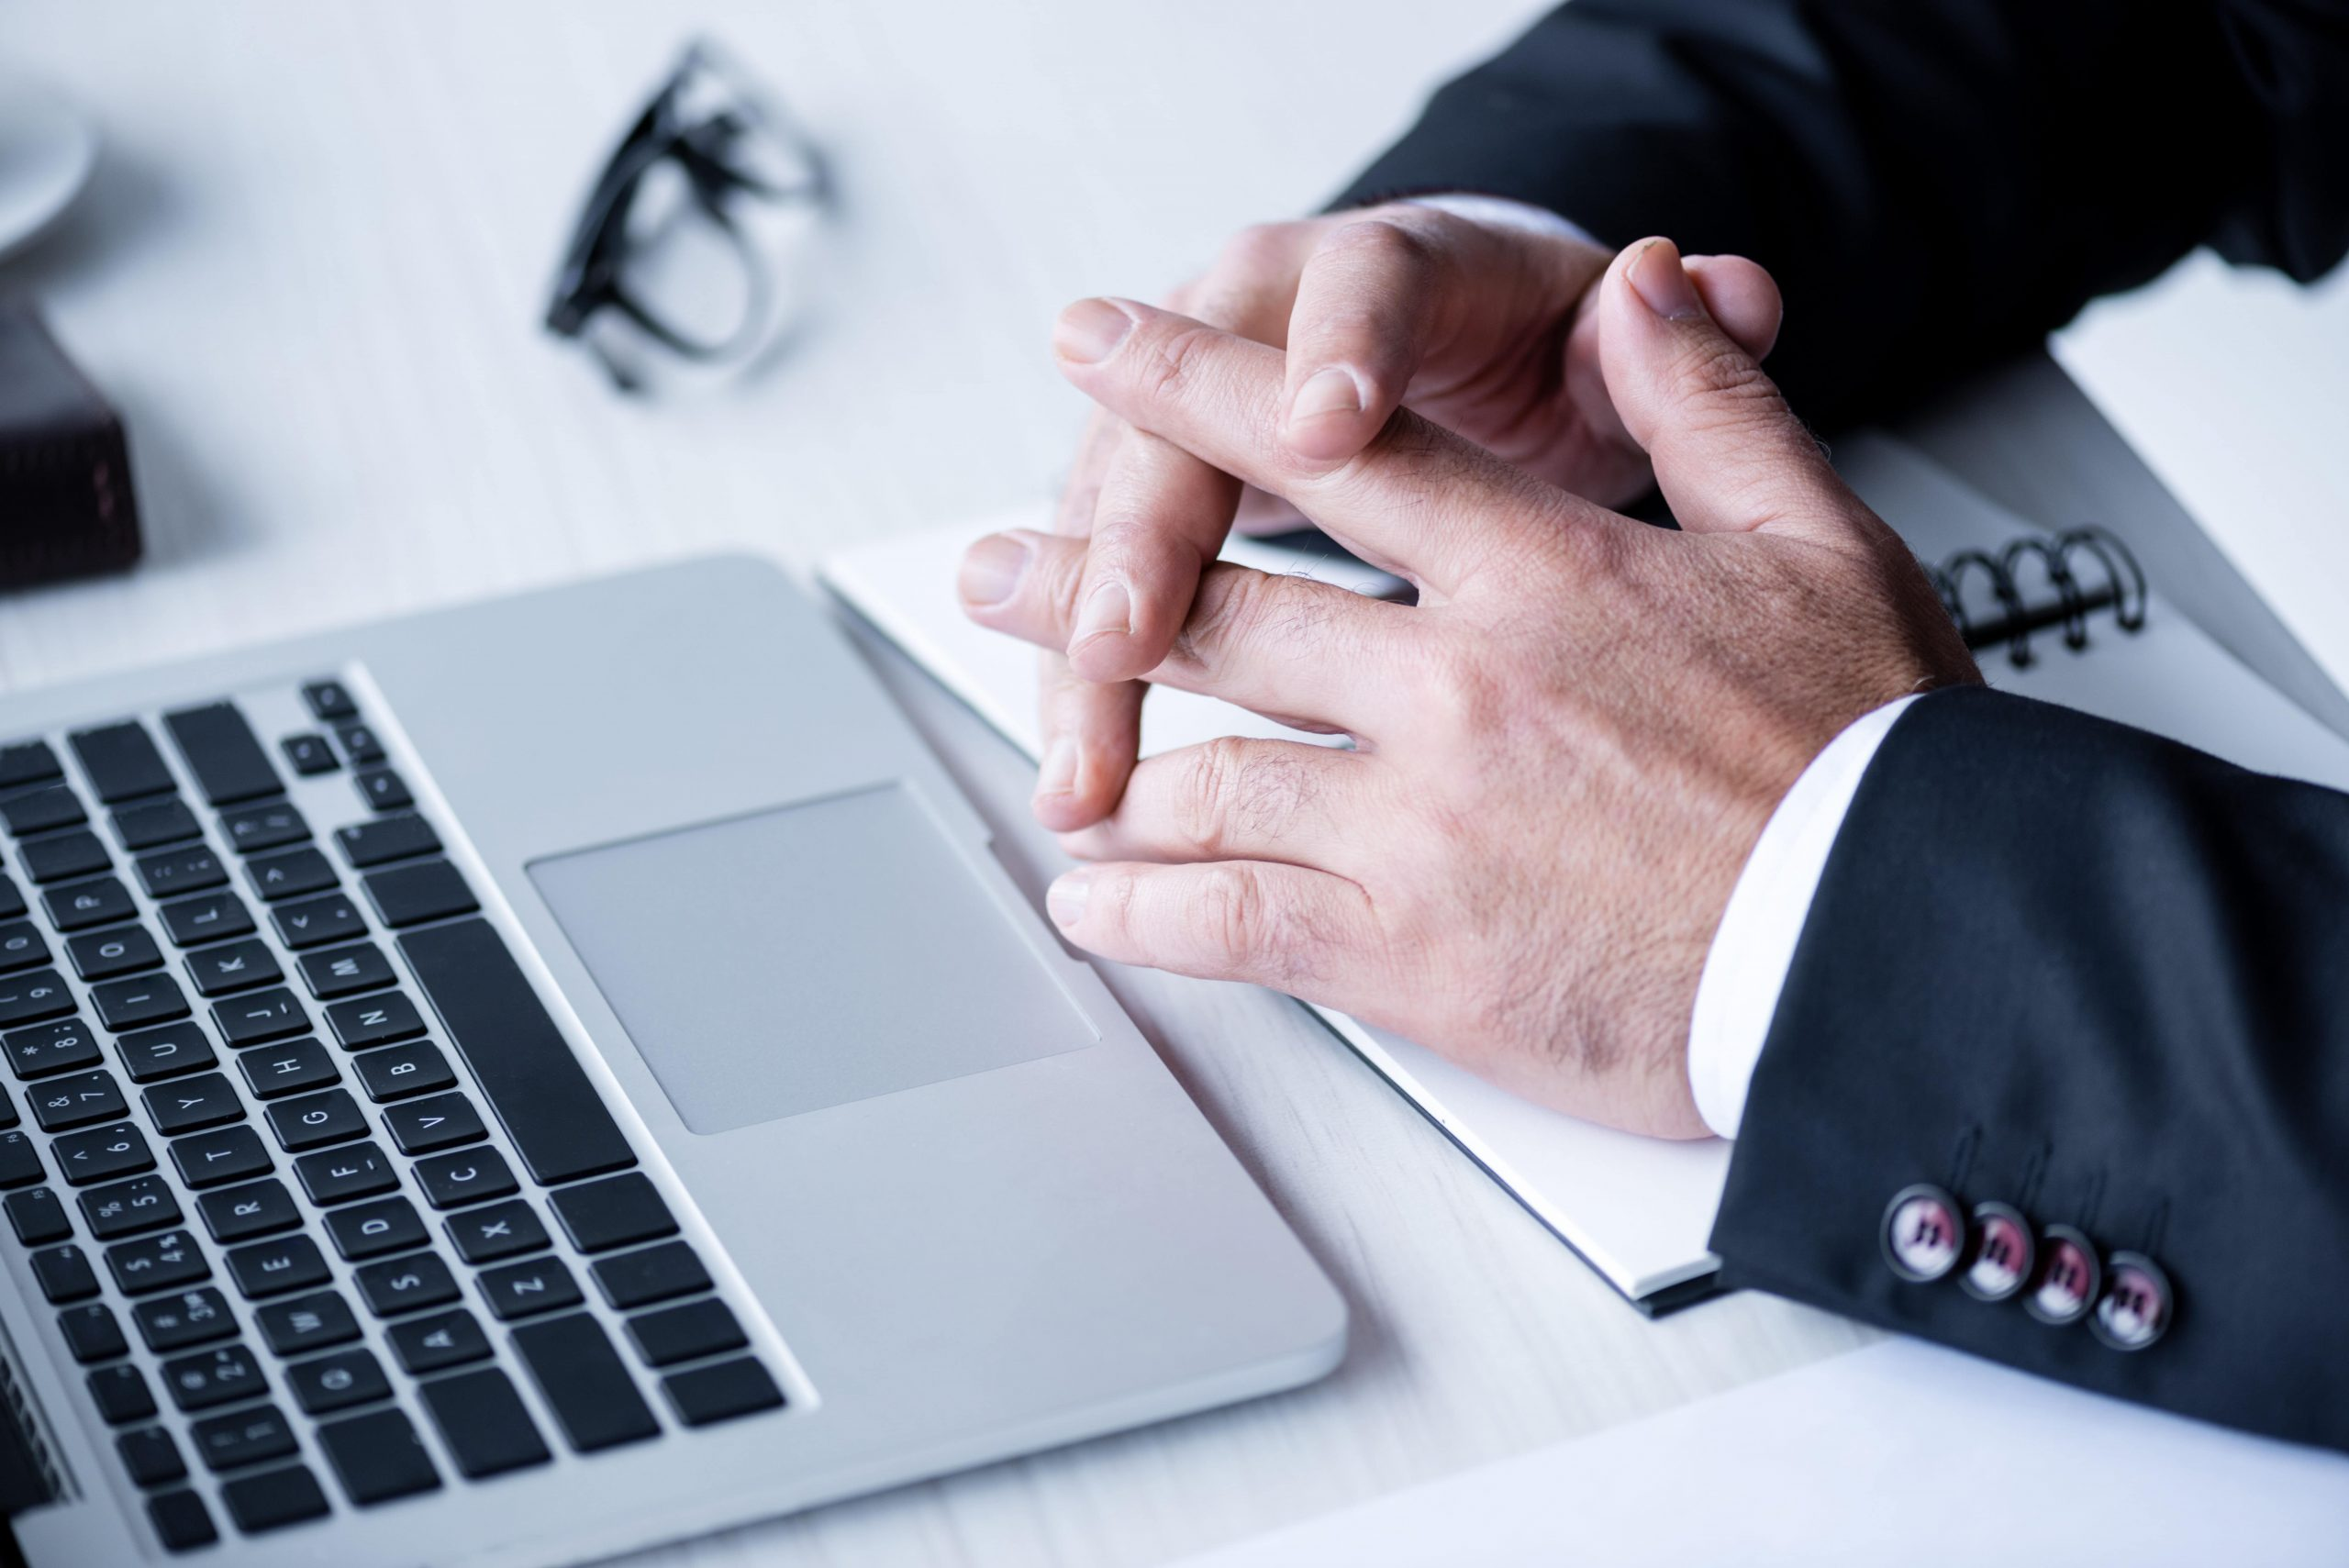 cropped-view-of-businessman-in-suit-working-with-l-KA8RGN7-min